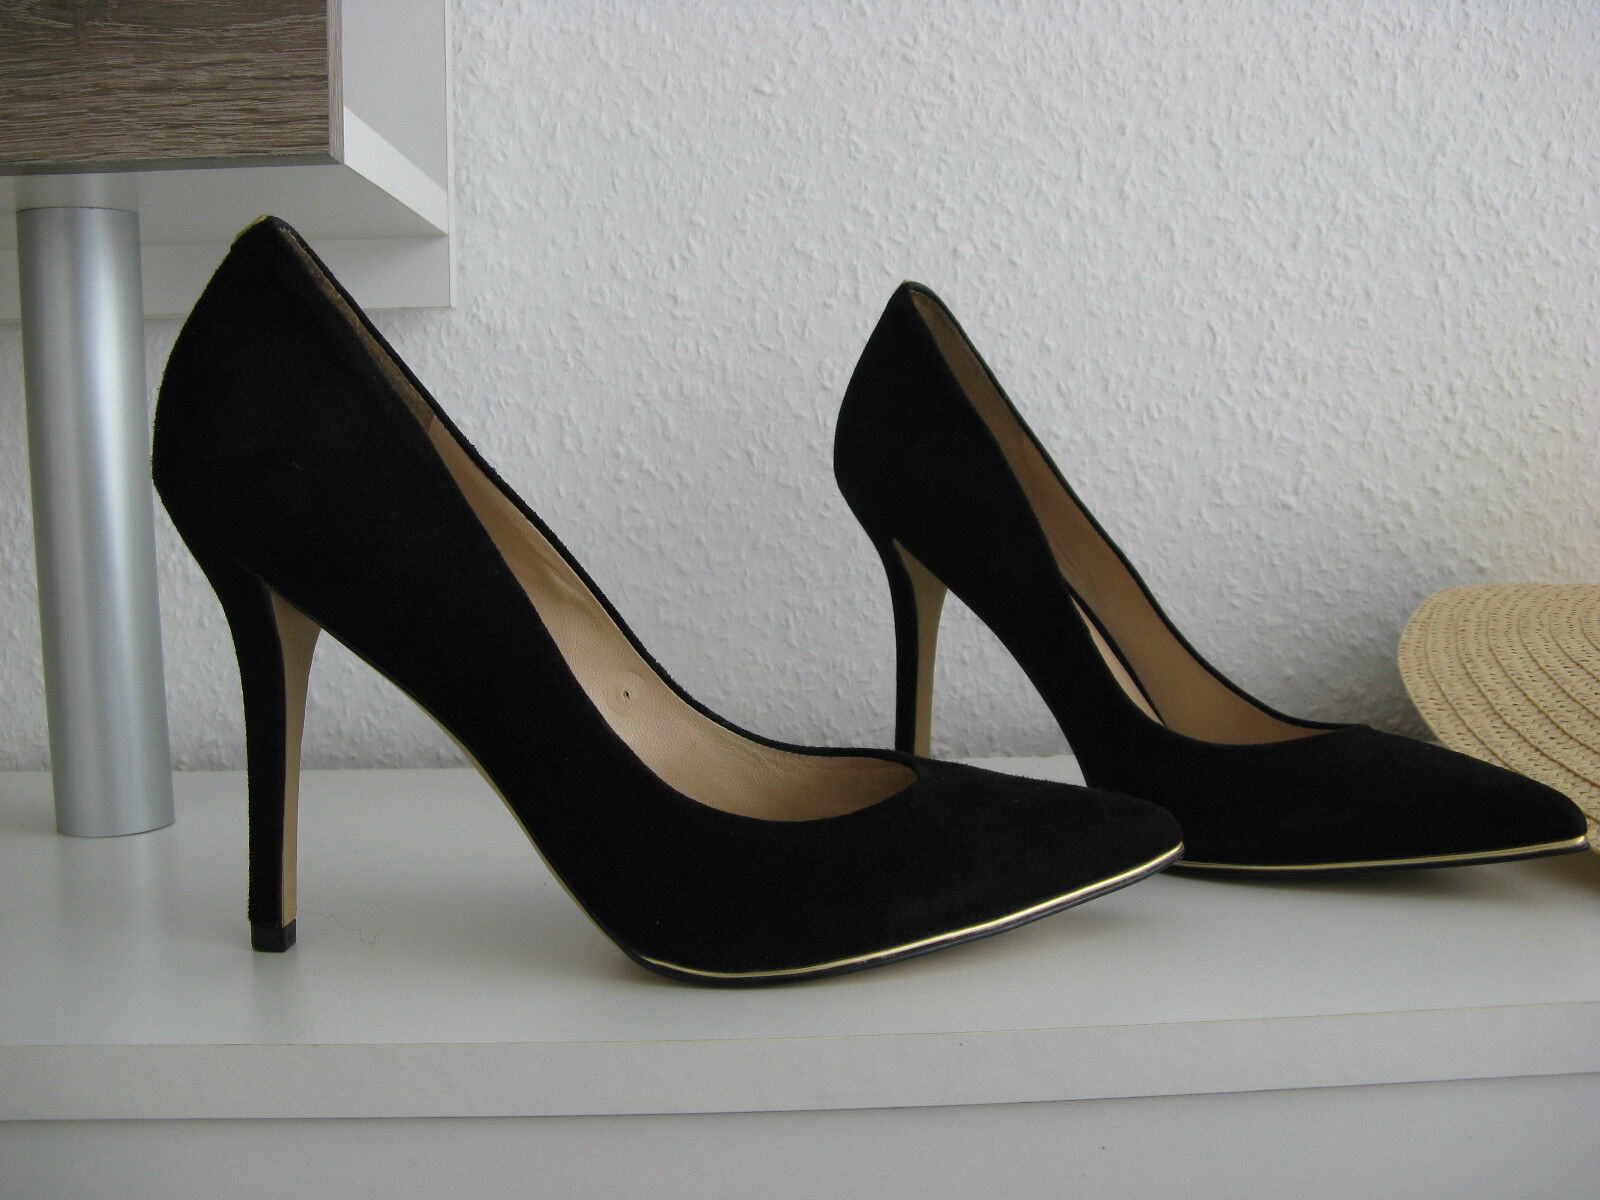 GUESS HIGH HEELS PUMPS 40 WILDLEDER SUEDE black SEXY LEDER goldENE DETAILS